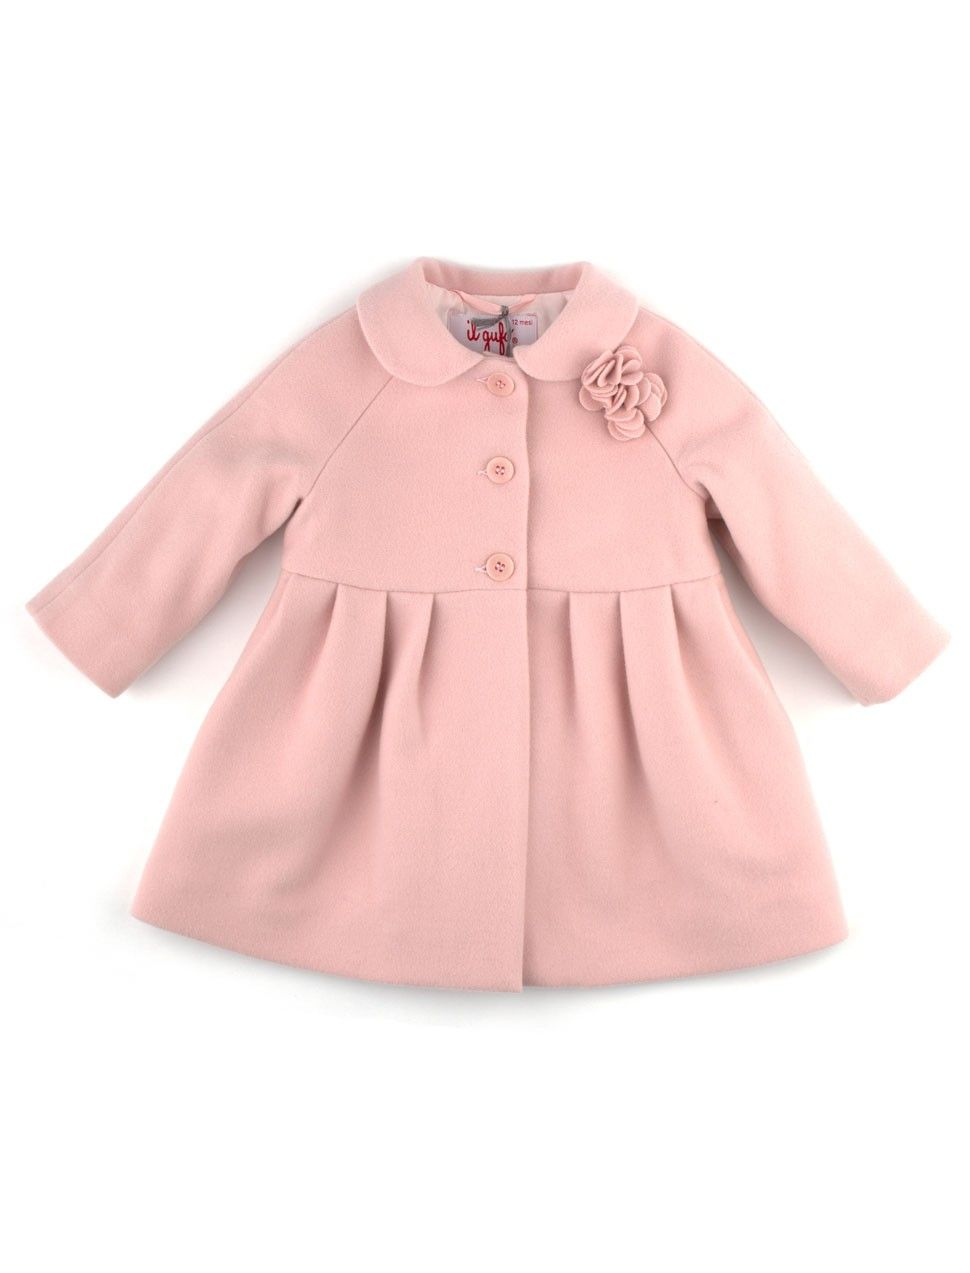 Elegant light old pink Il gufo baby girl coat | Pinning Friends ...